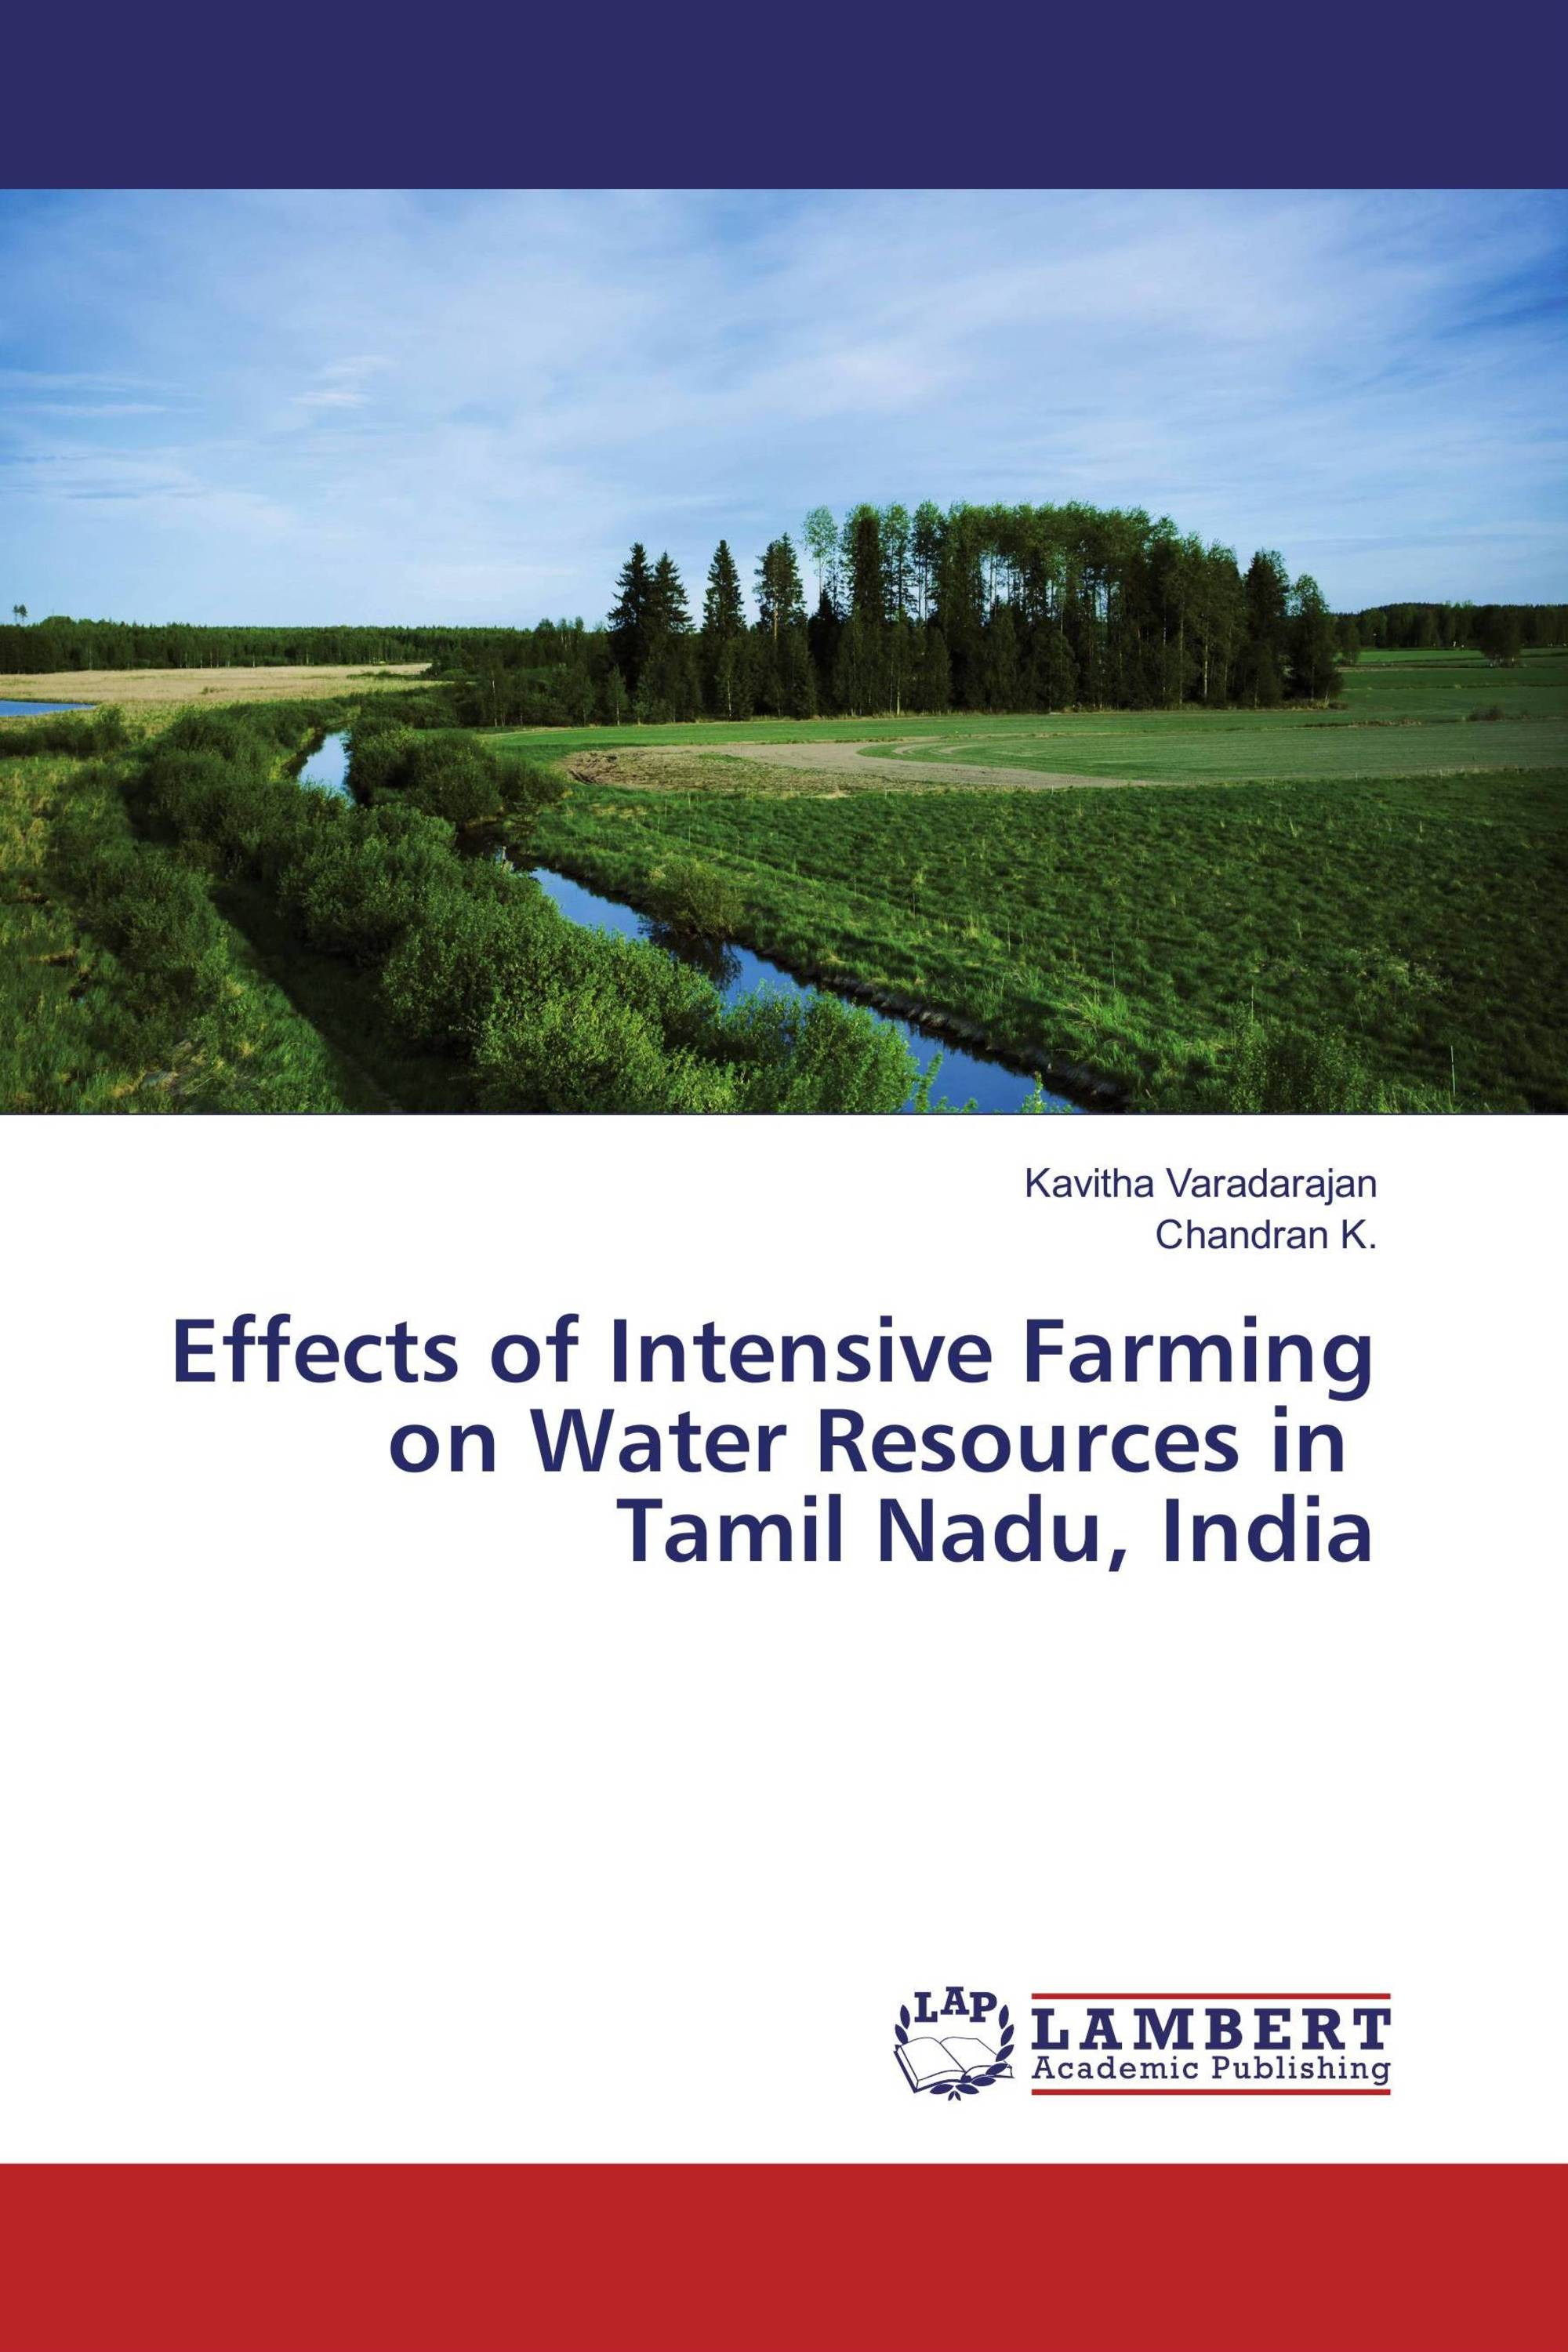 Effects of Intensive Farming on Water Resources in Tamil